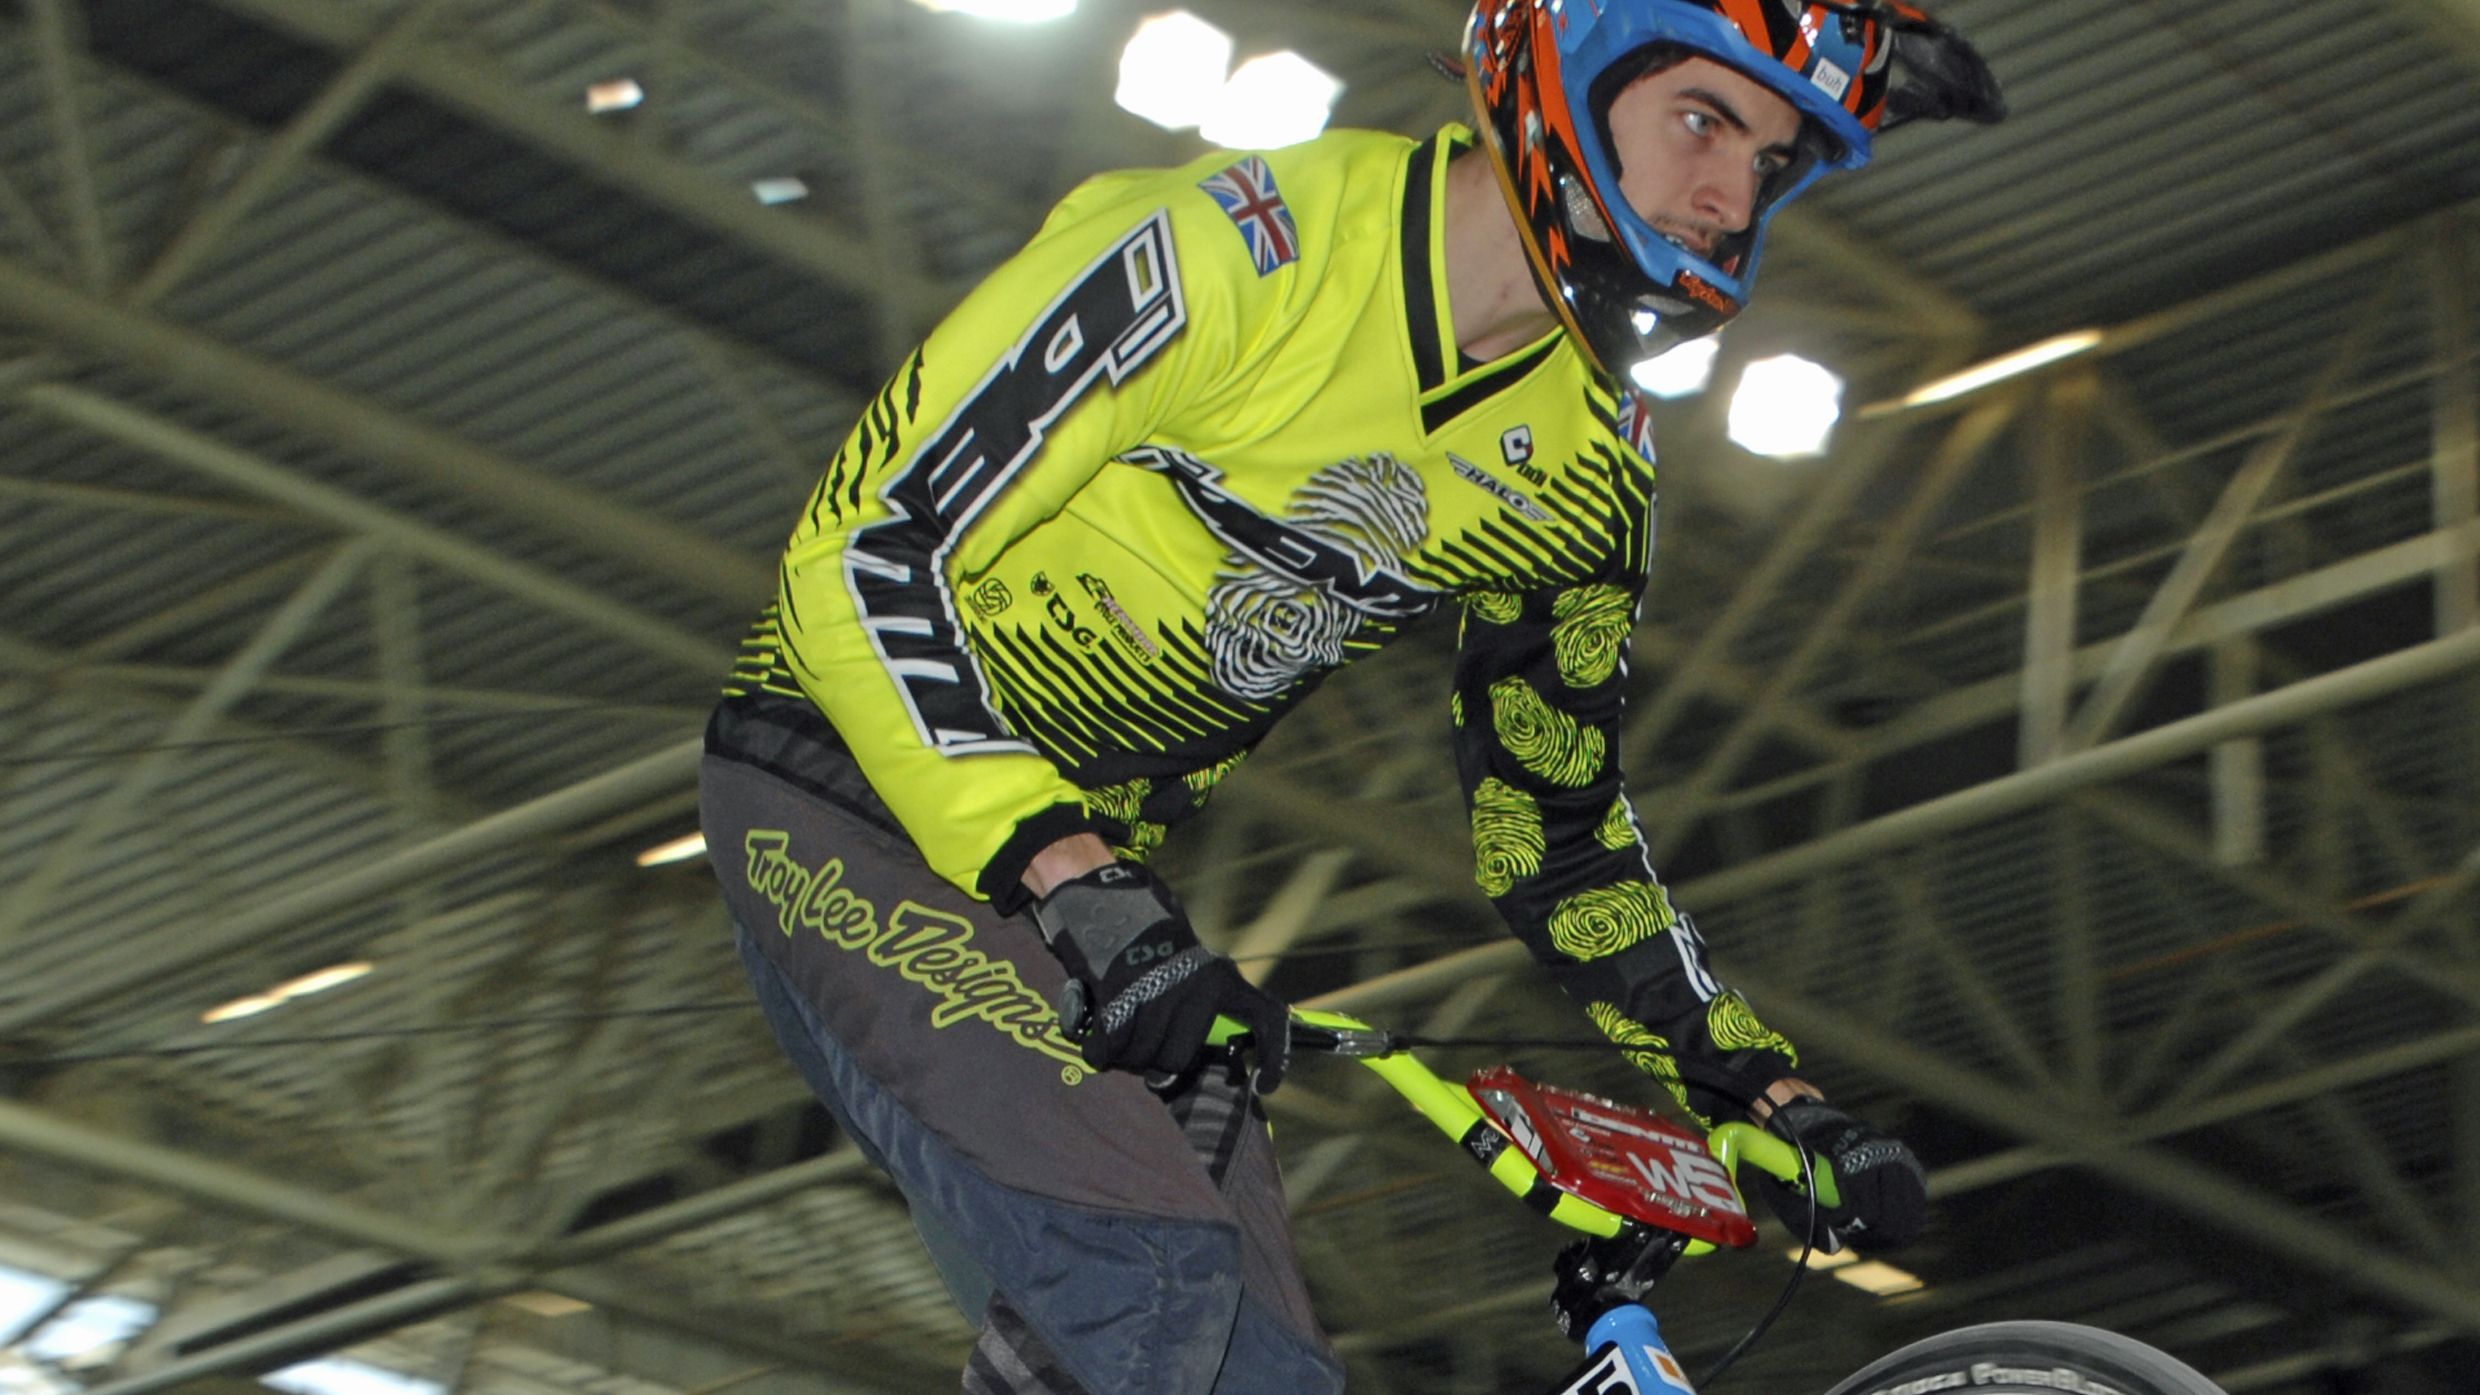 Braintree BMX Racing Club's Oliver Cutmore holds an early advantage in the standings thanks to third and second place finishes respectively at rounds one and two in Manchester.